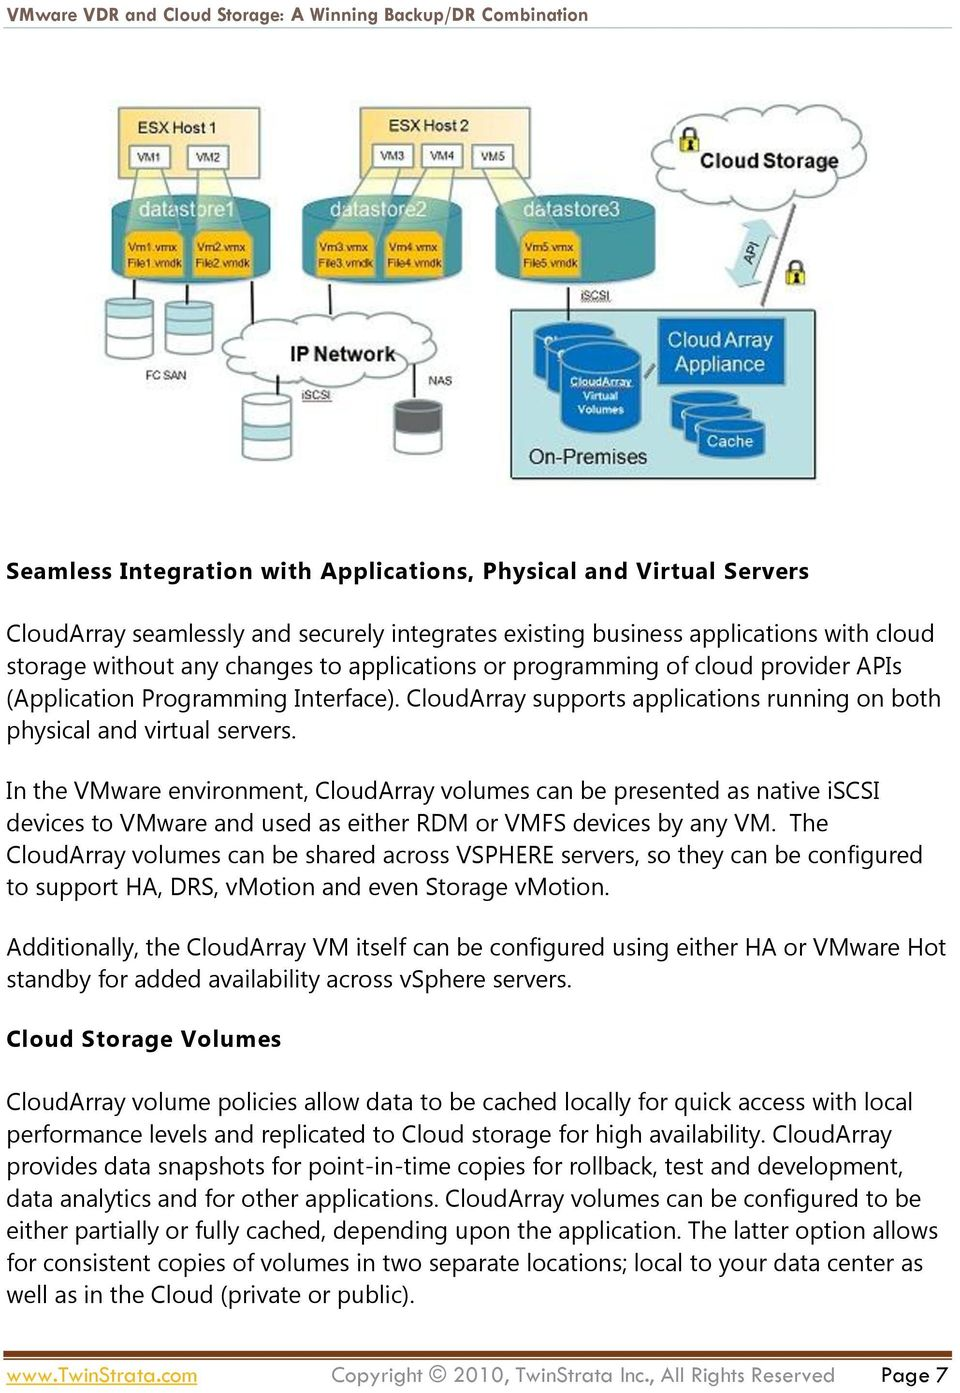 In the VMware environment, CloudArray volumes can be presented as native iscsi devices to VMware and used as either RDM or VMFS devices by any VM.